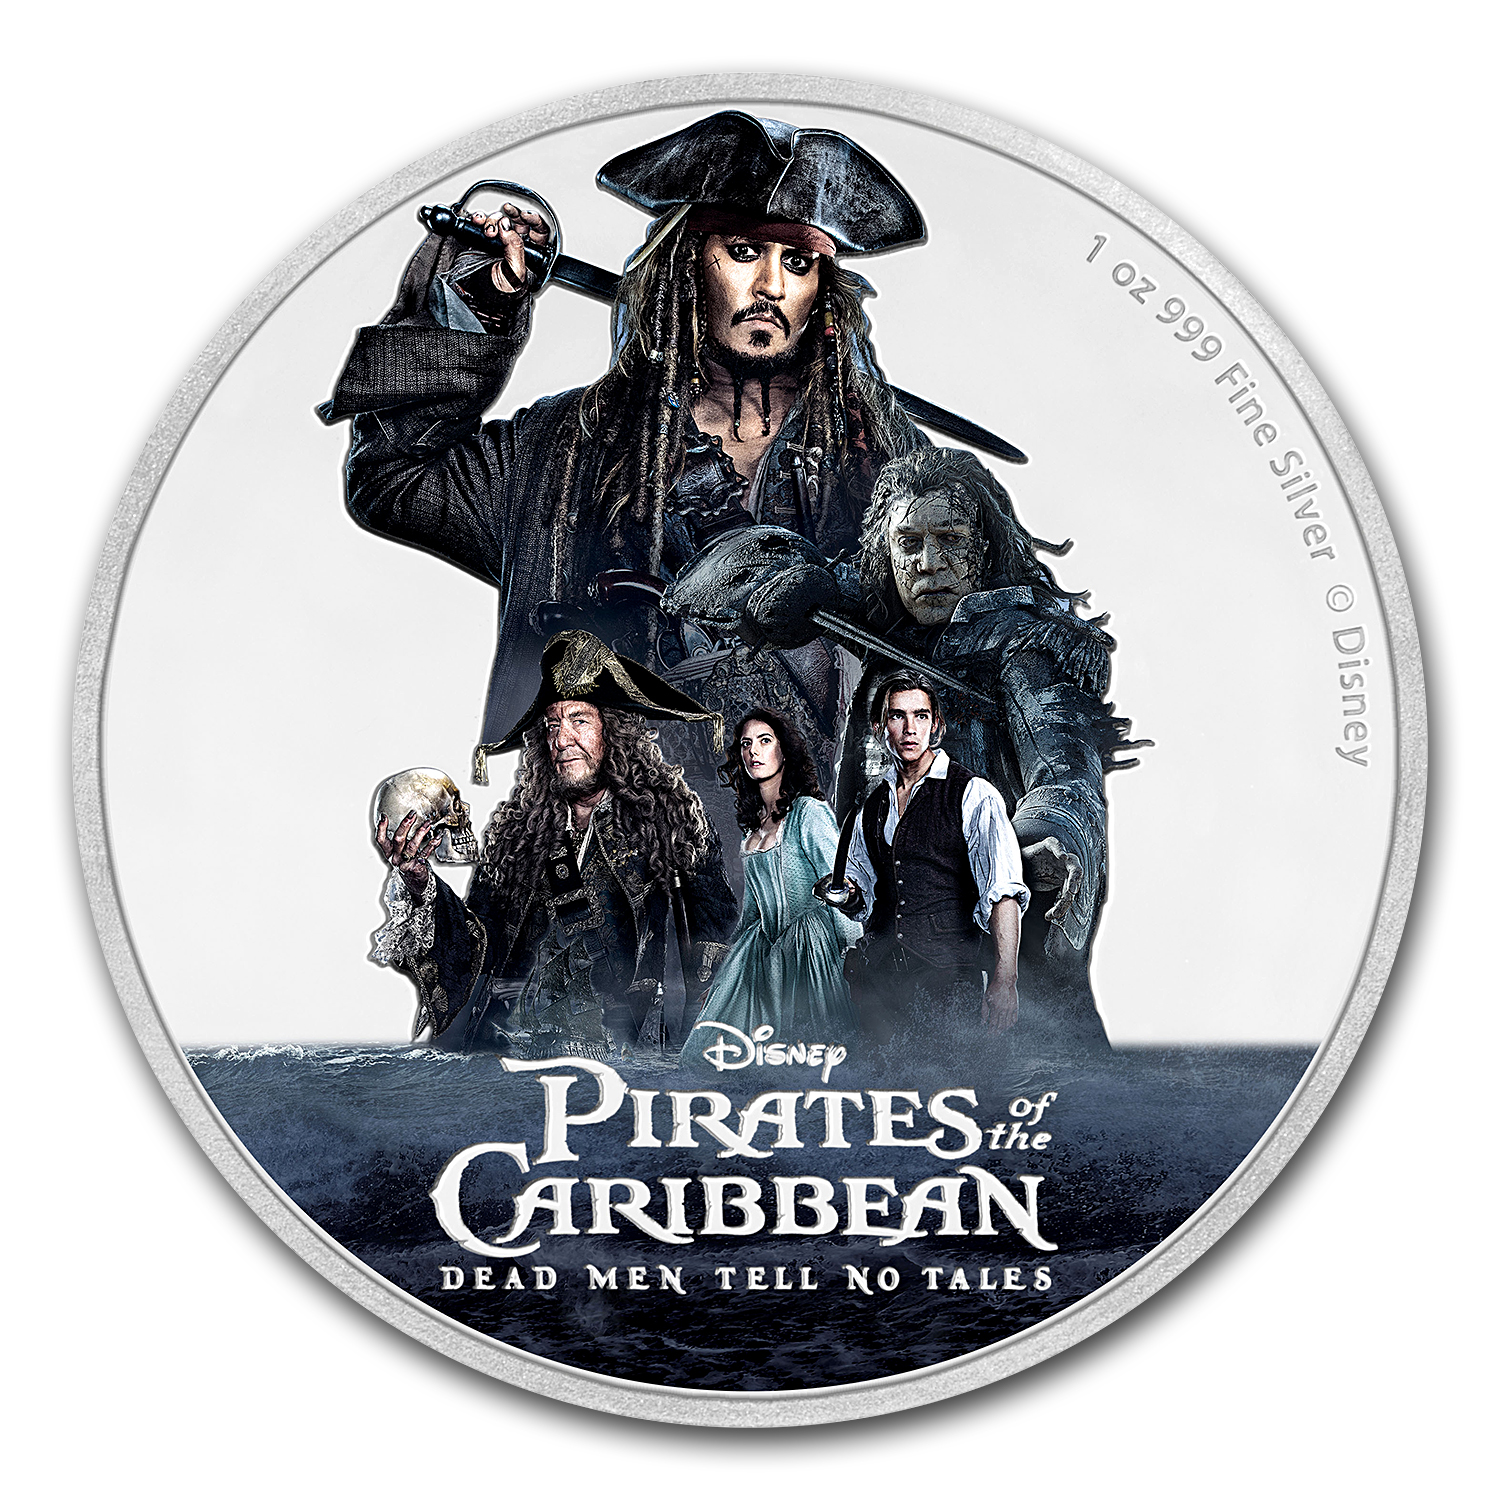 2017 Niue 1 oz Silver $2 Disney Pirates of the Caribbean